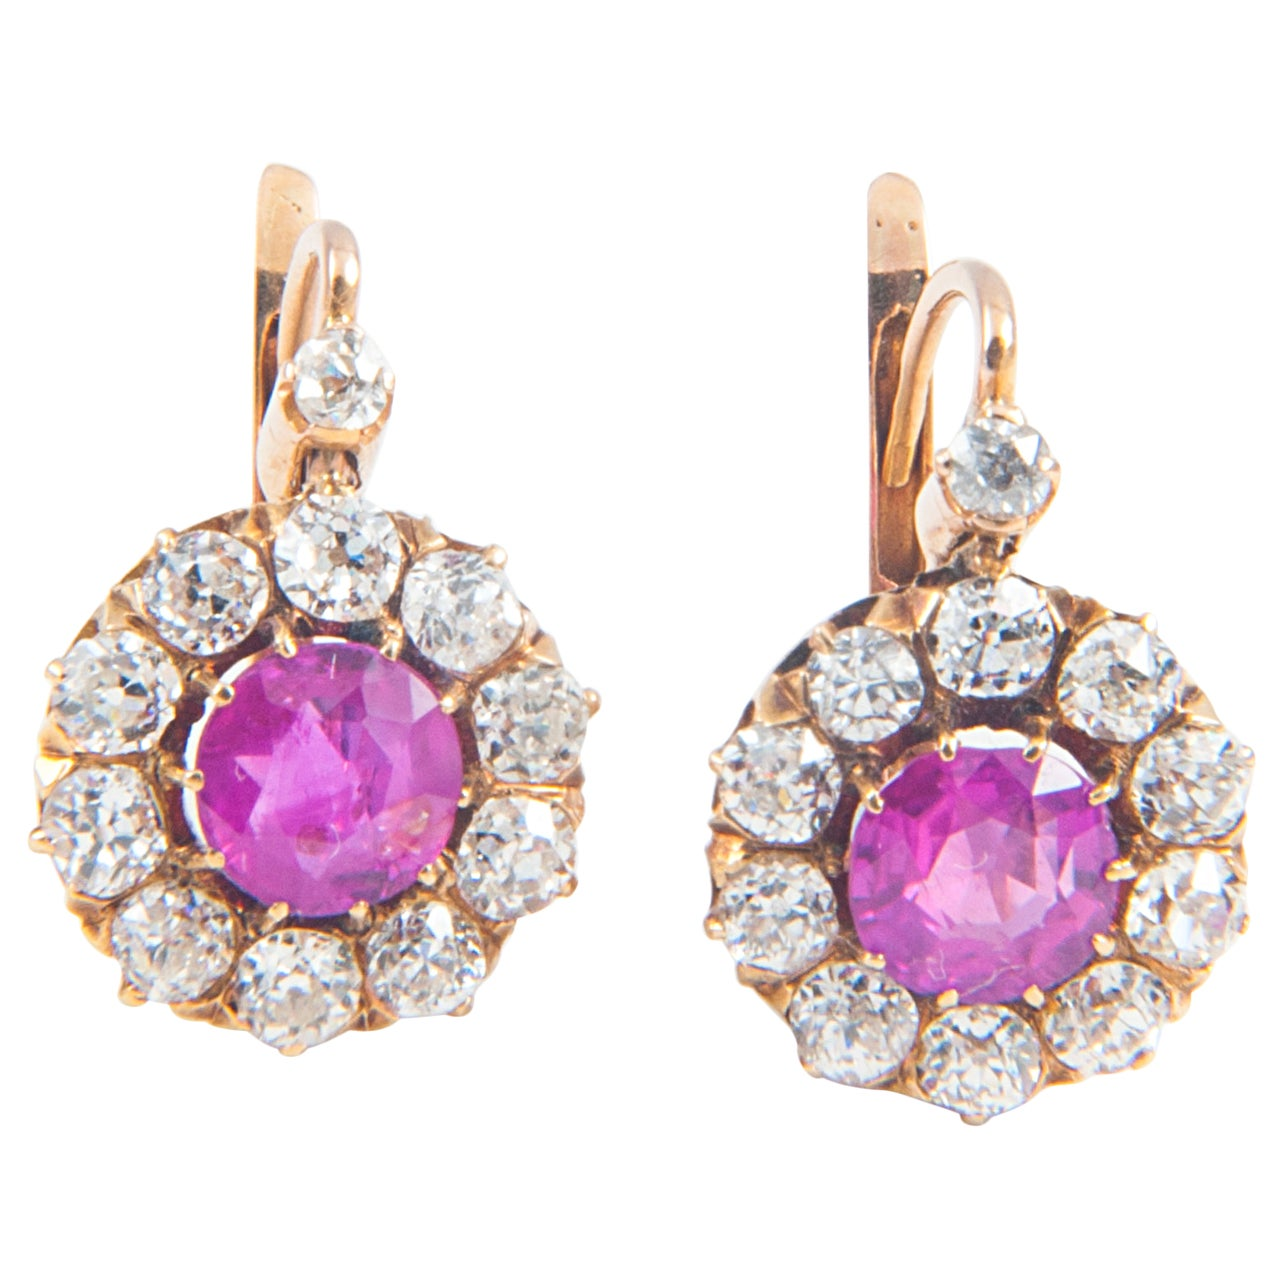 Pink Sapphire Earrings For Sale at 1stdibs